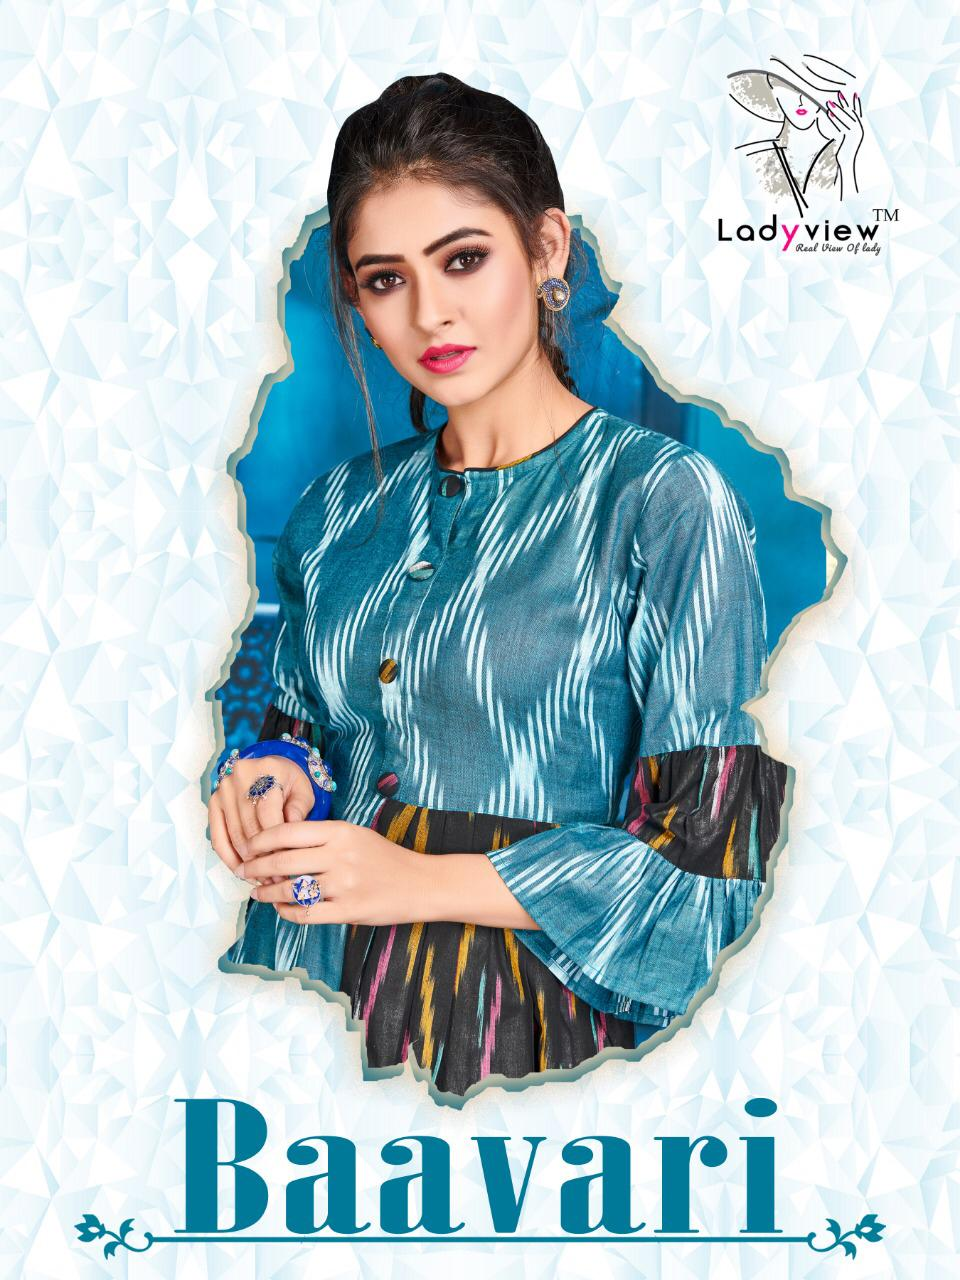 Ladyview Baavri Summer Tops Collection Best Wholesale Rate